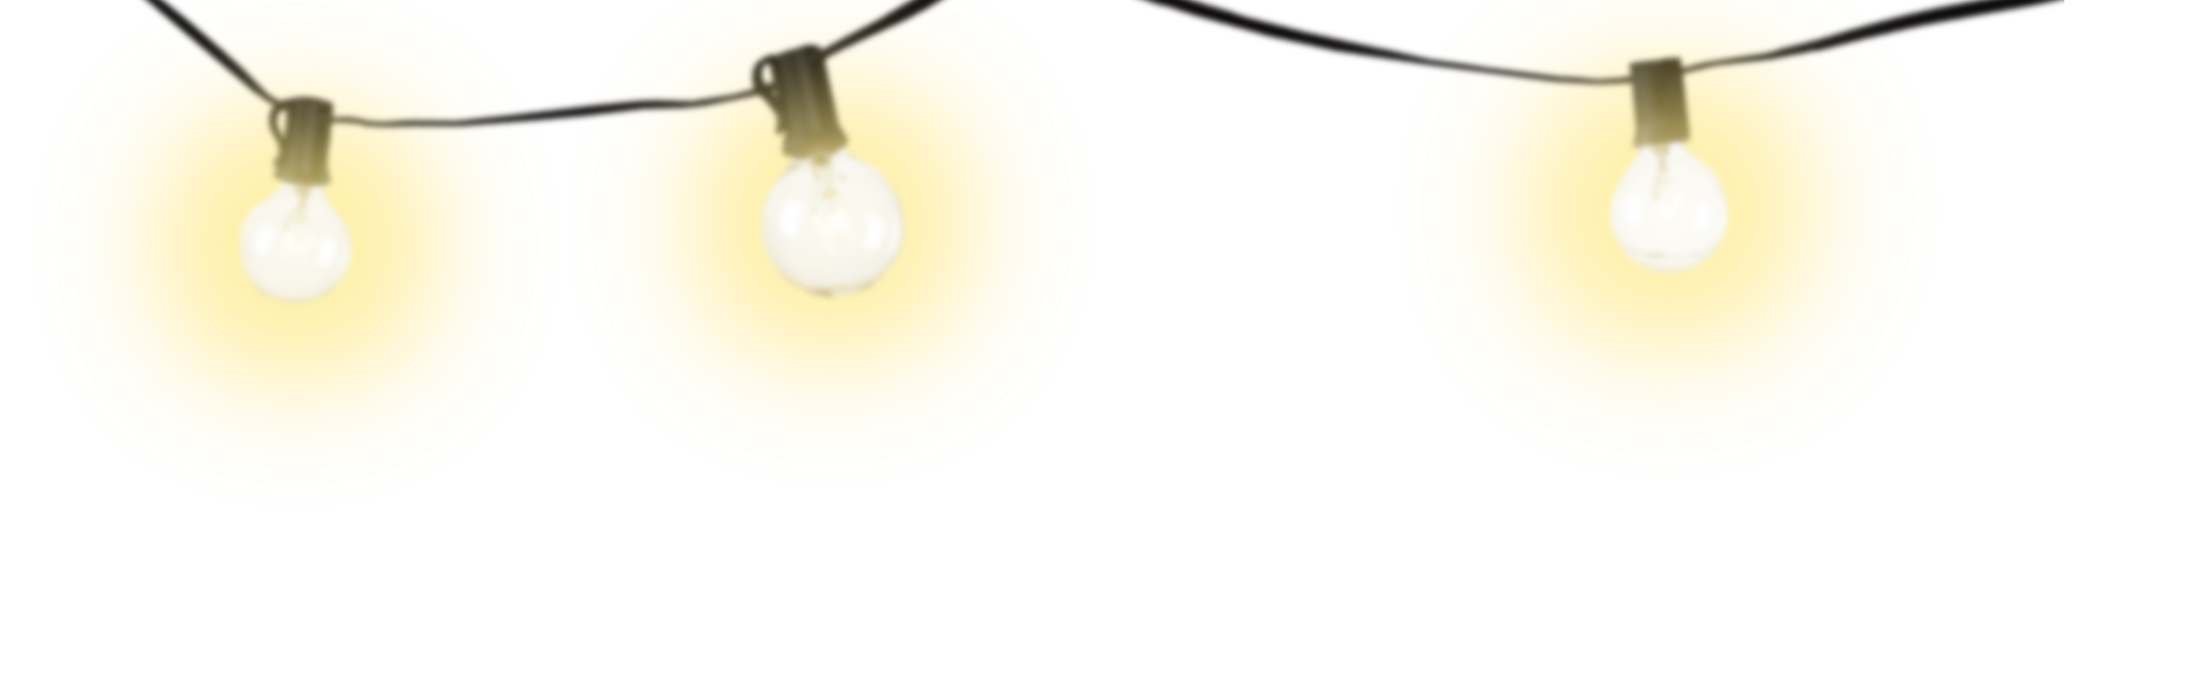 String lights clipart png. Collection of transparent